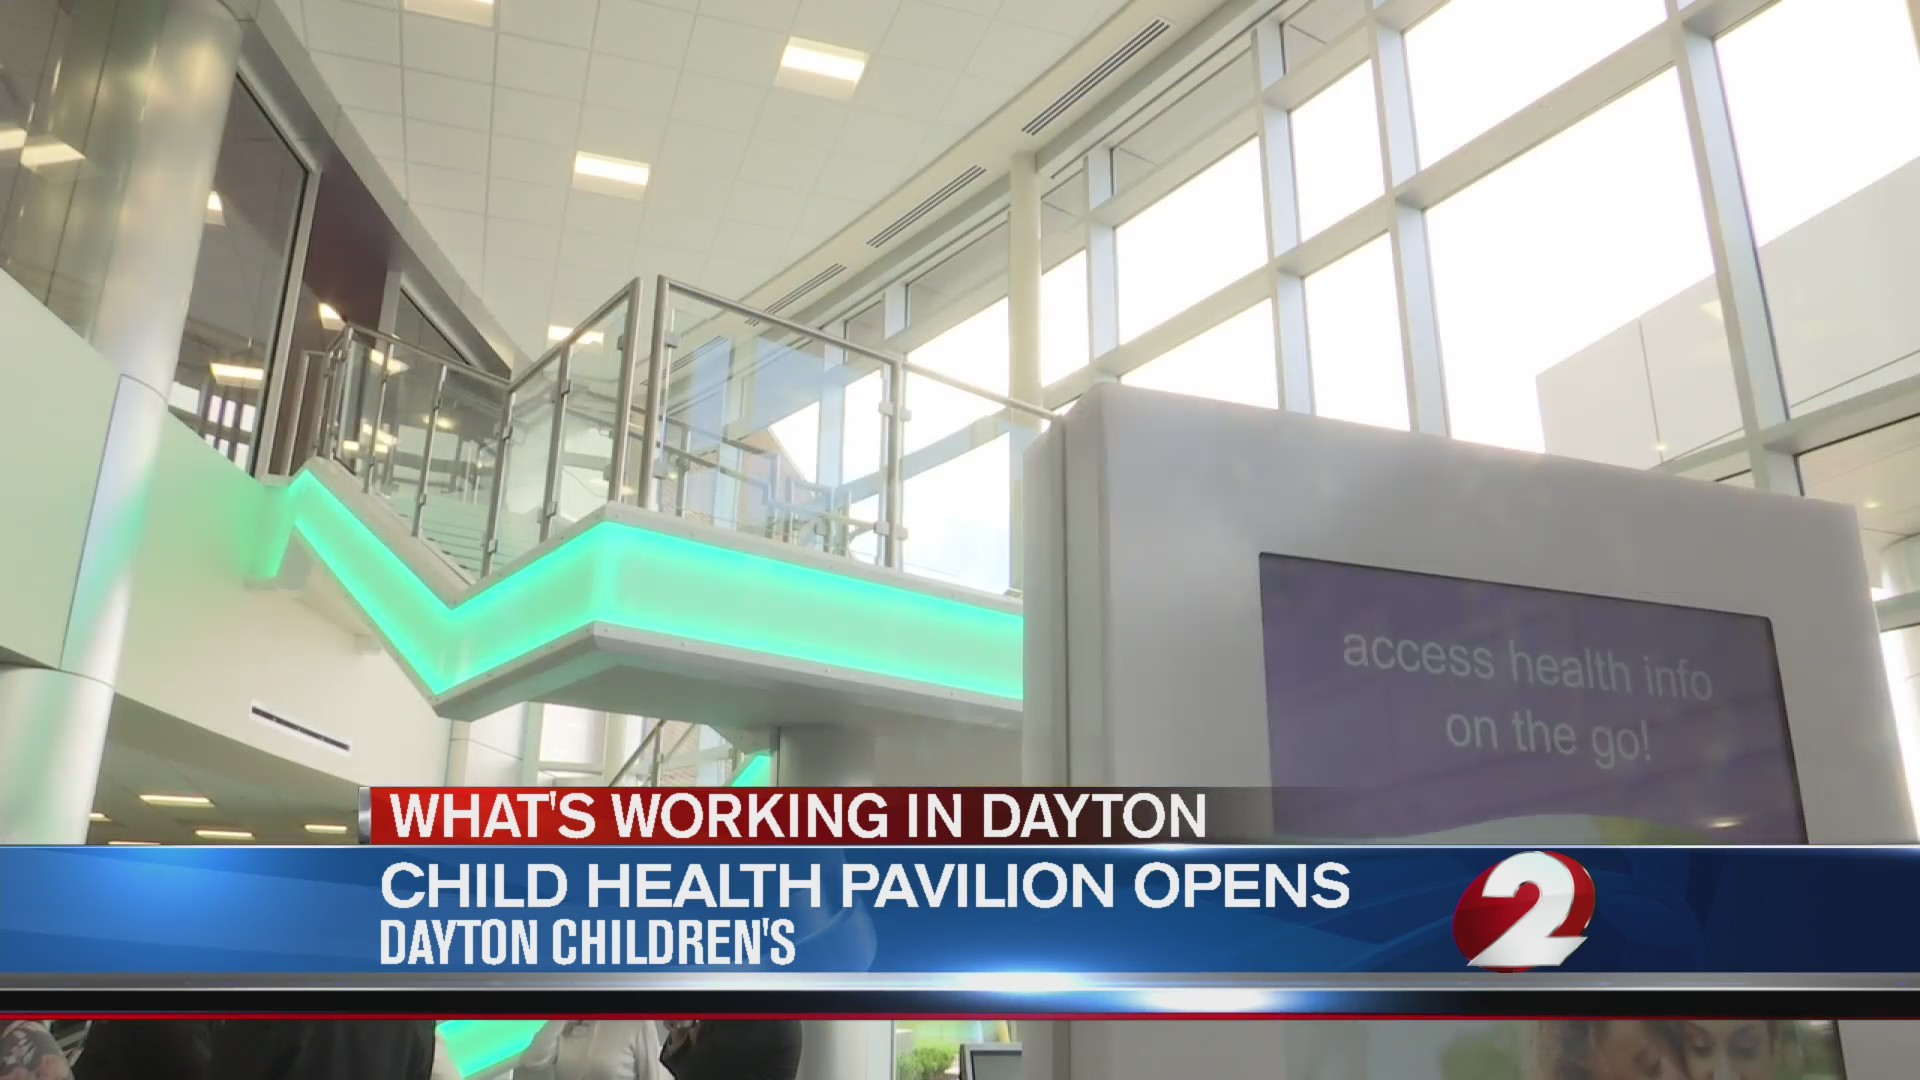 Child Health pavilion opens at Dayton Children's